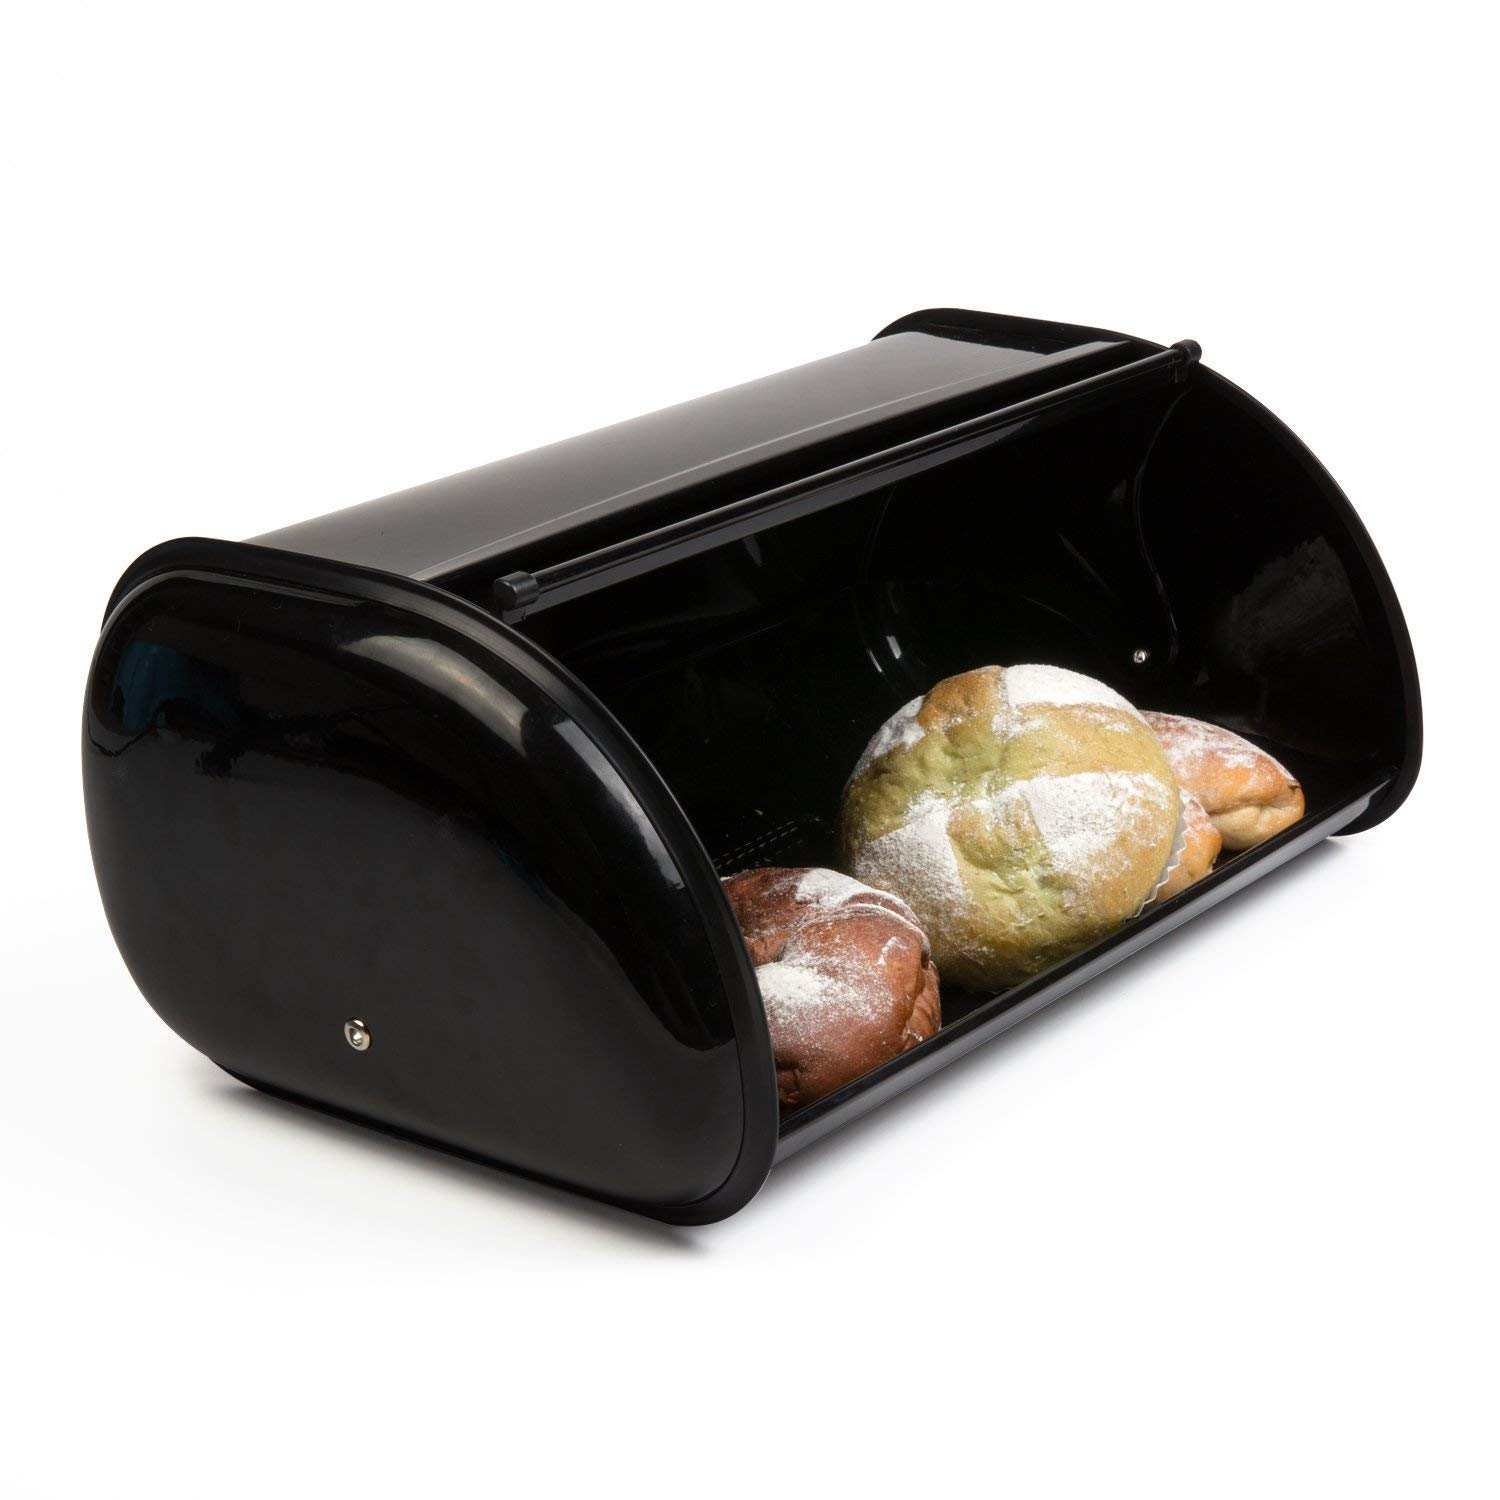 THRICH Deluxe Steel Modern Bread Box Storage with Roll up Lid, Clear Visual Window, Bright Black, 755oz (22L)